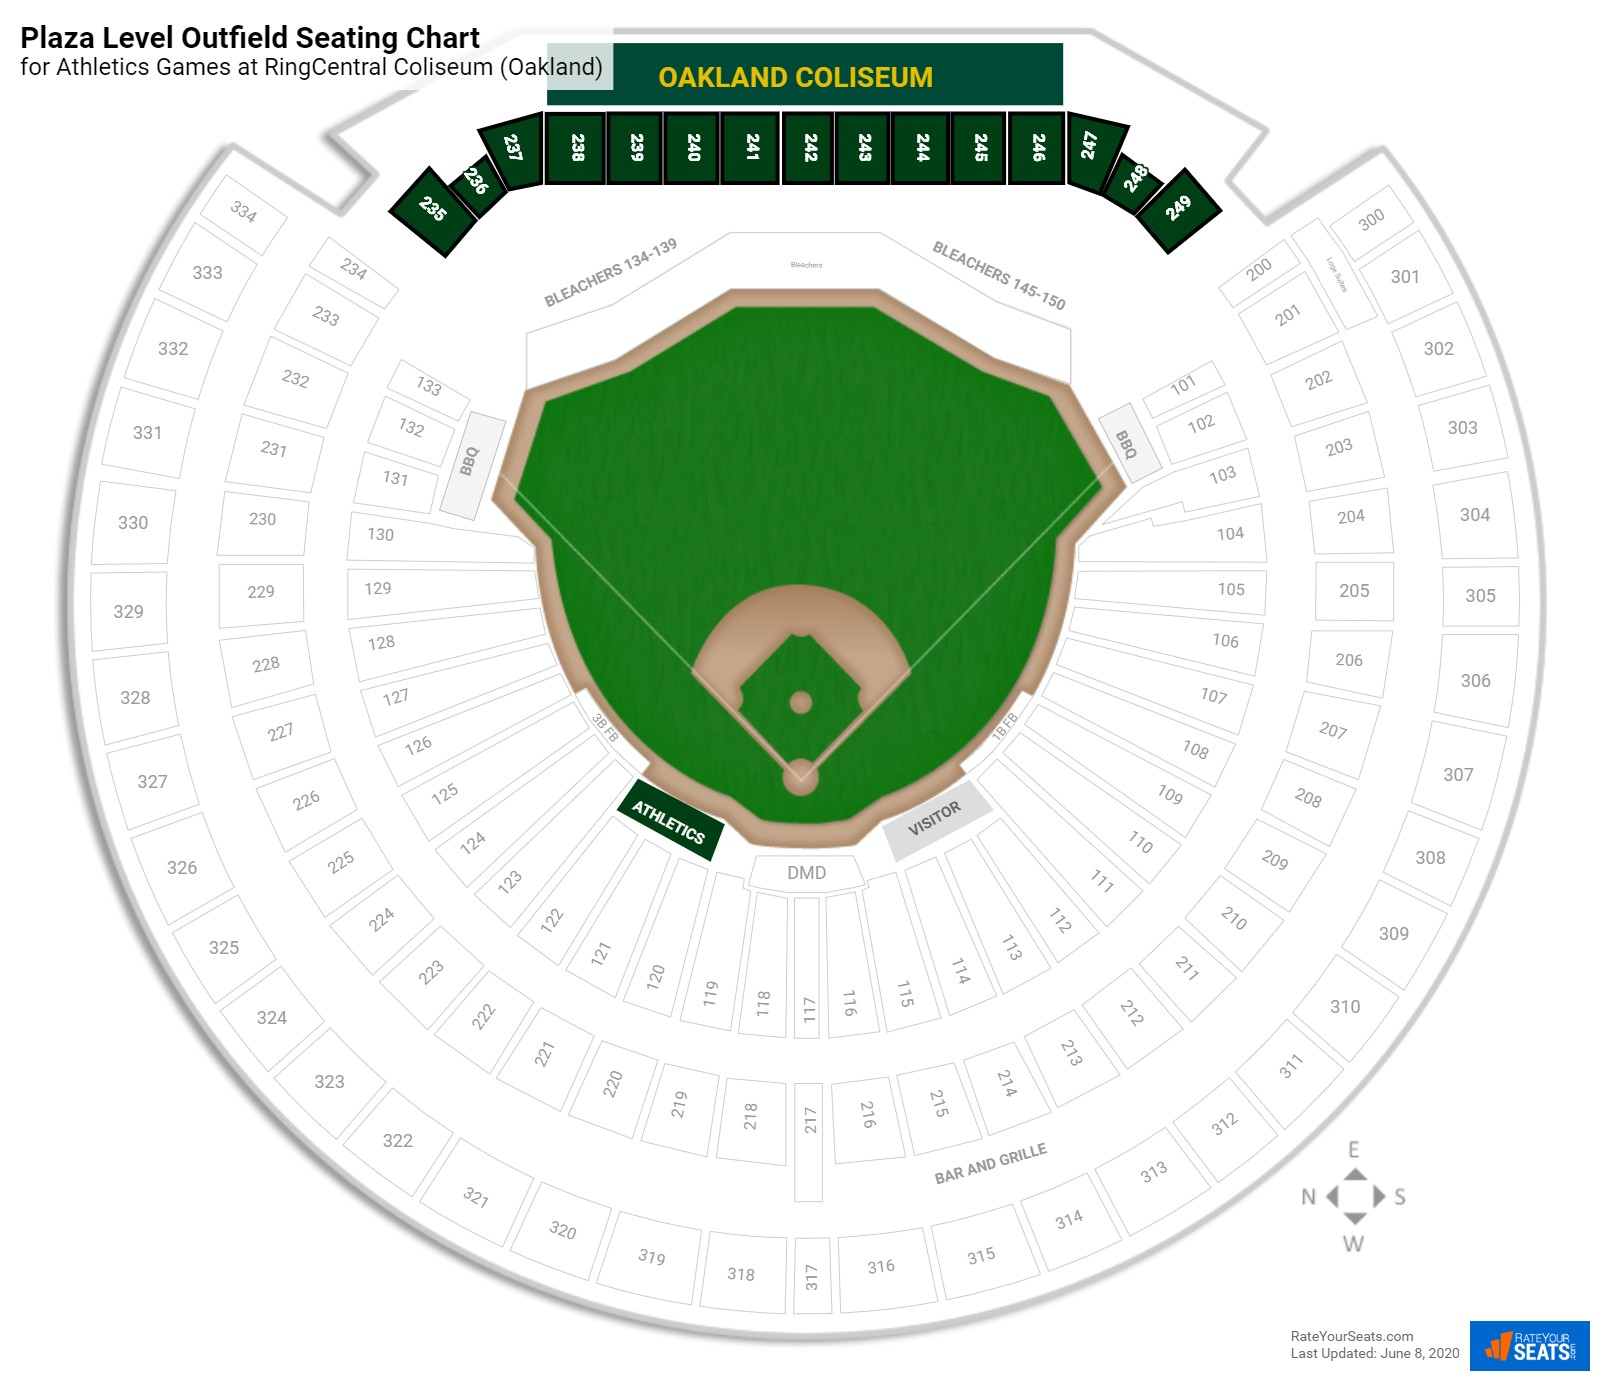 Oakland Coliseum Plaza Level Outfield seating chart